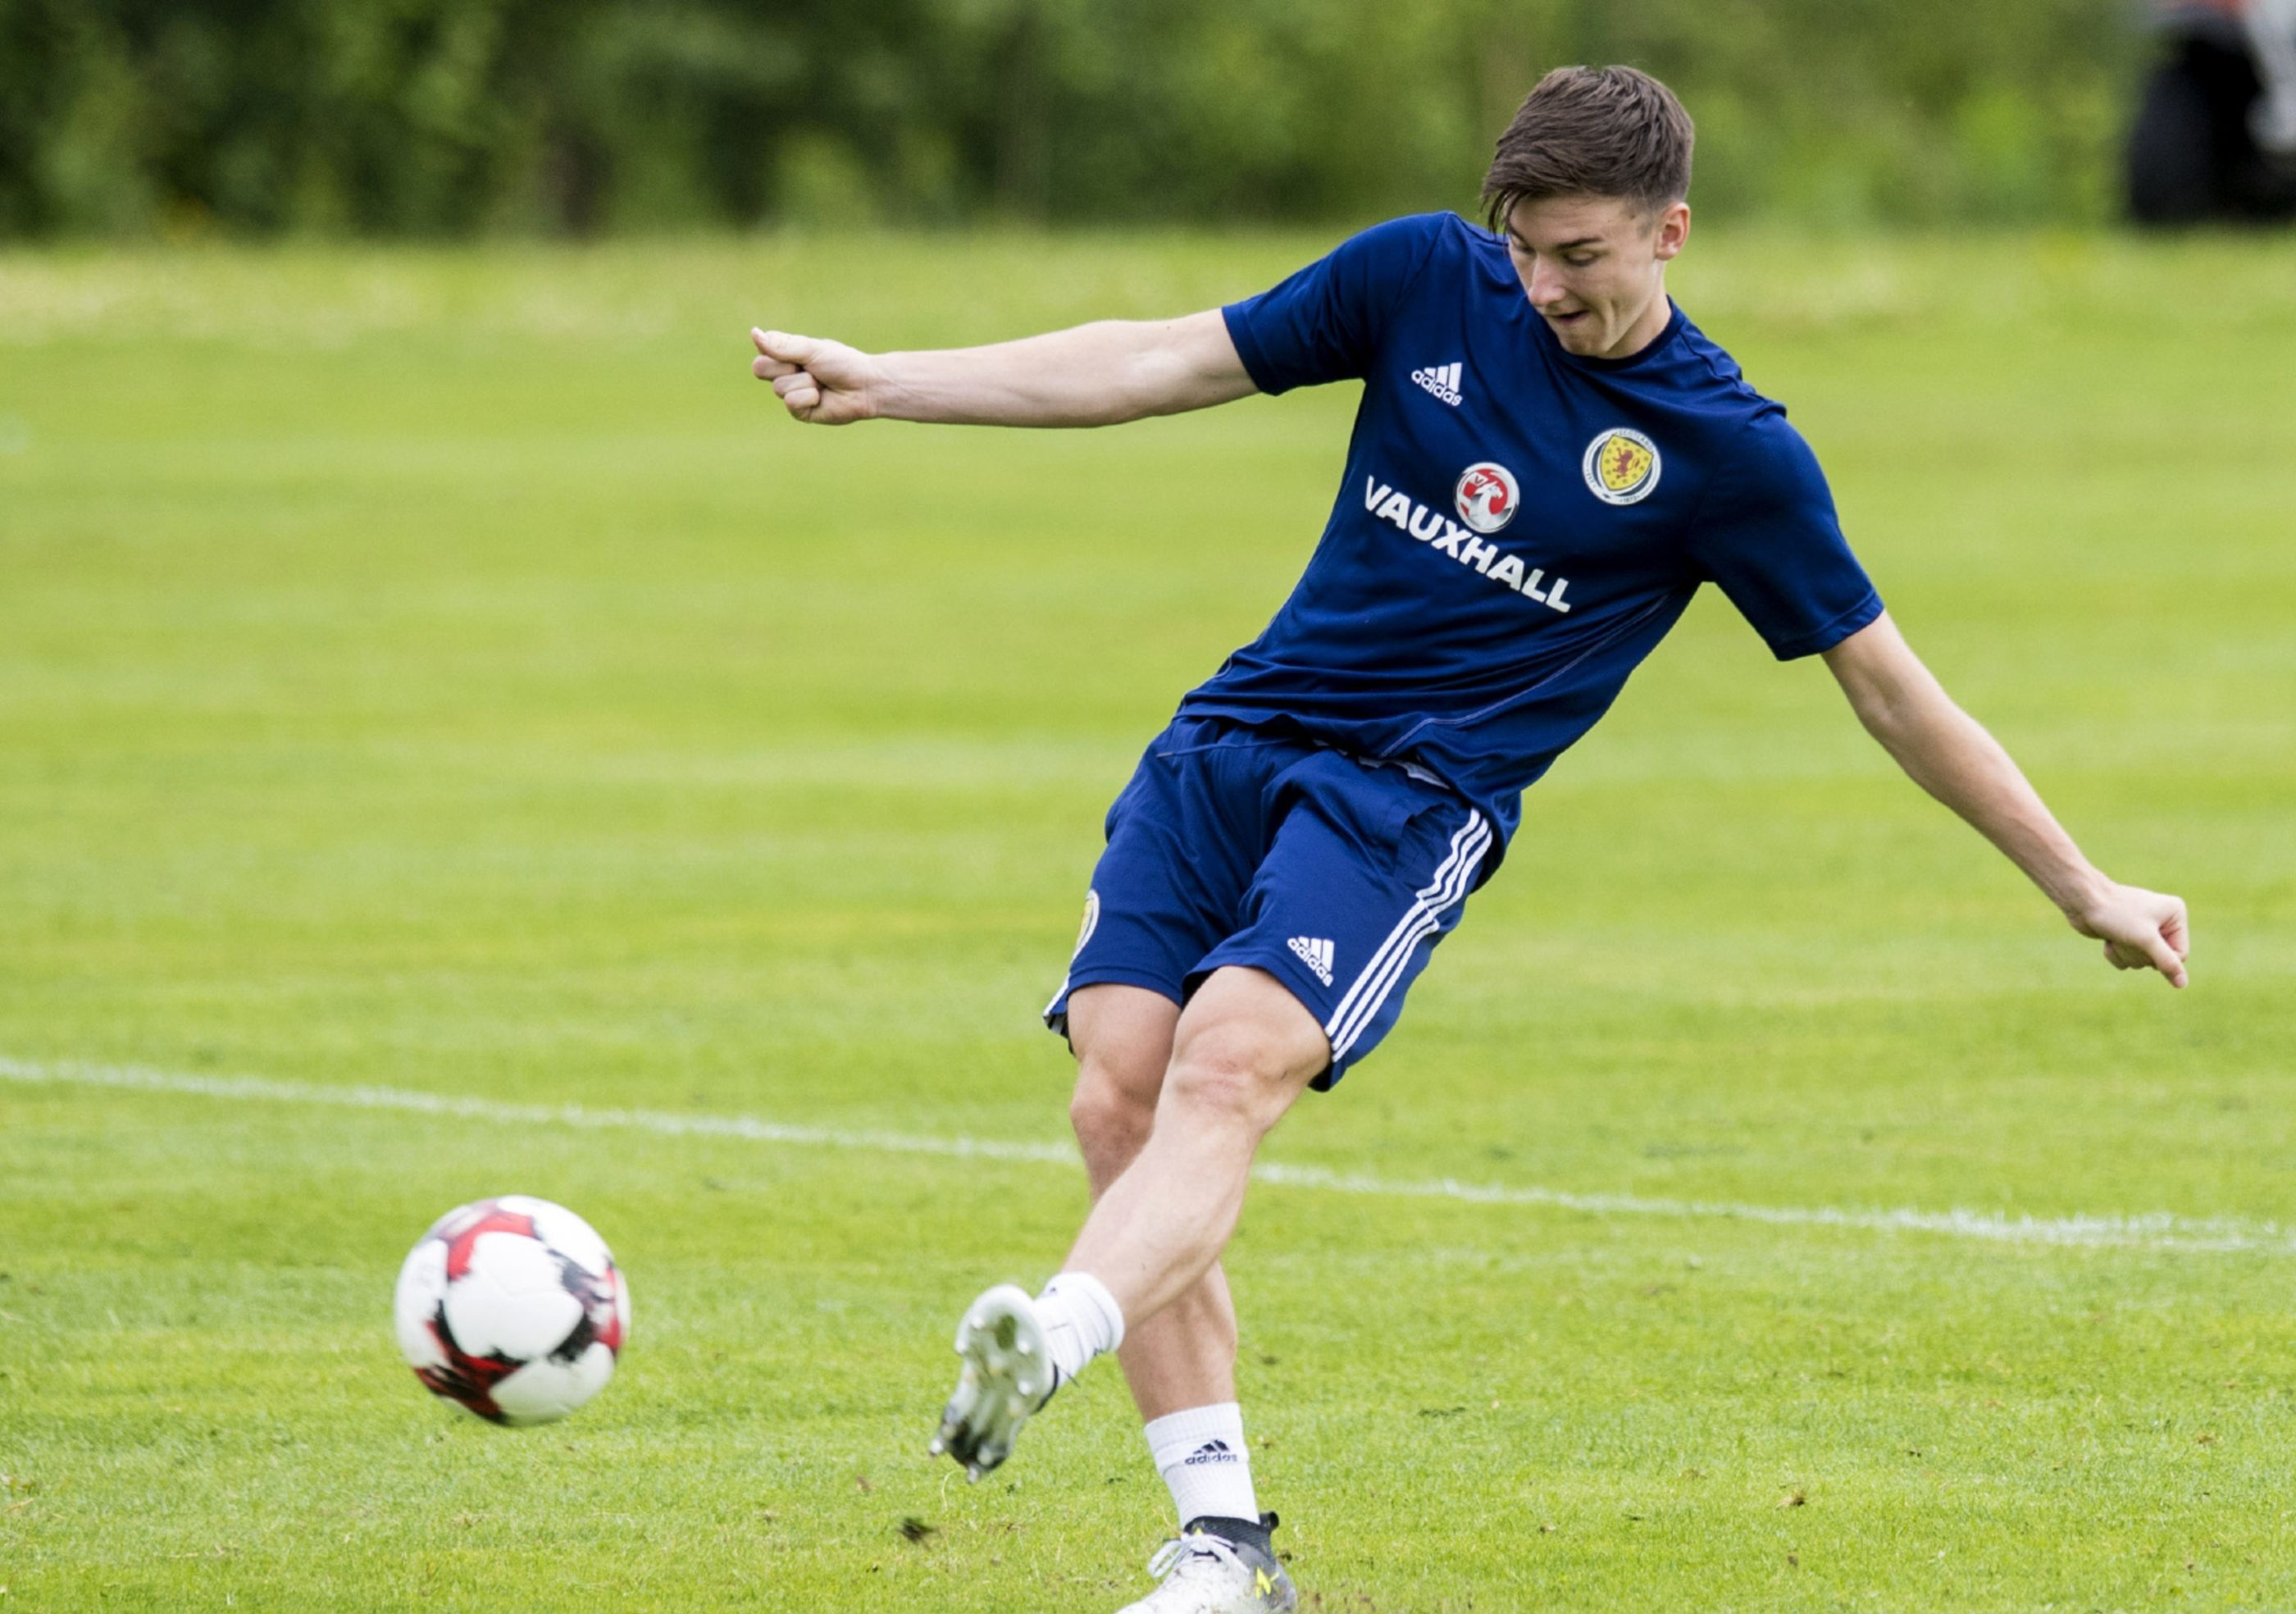 Kieran Tierney training on his own at Mar Hall.